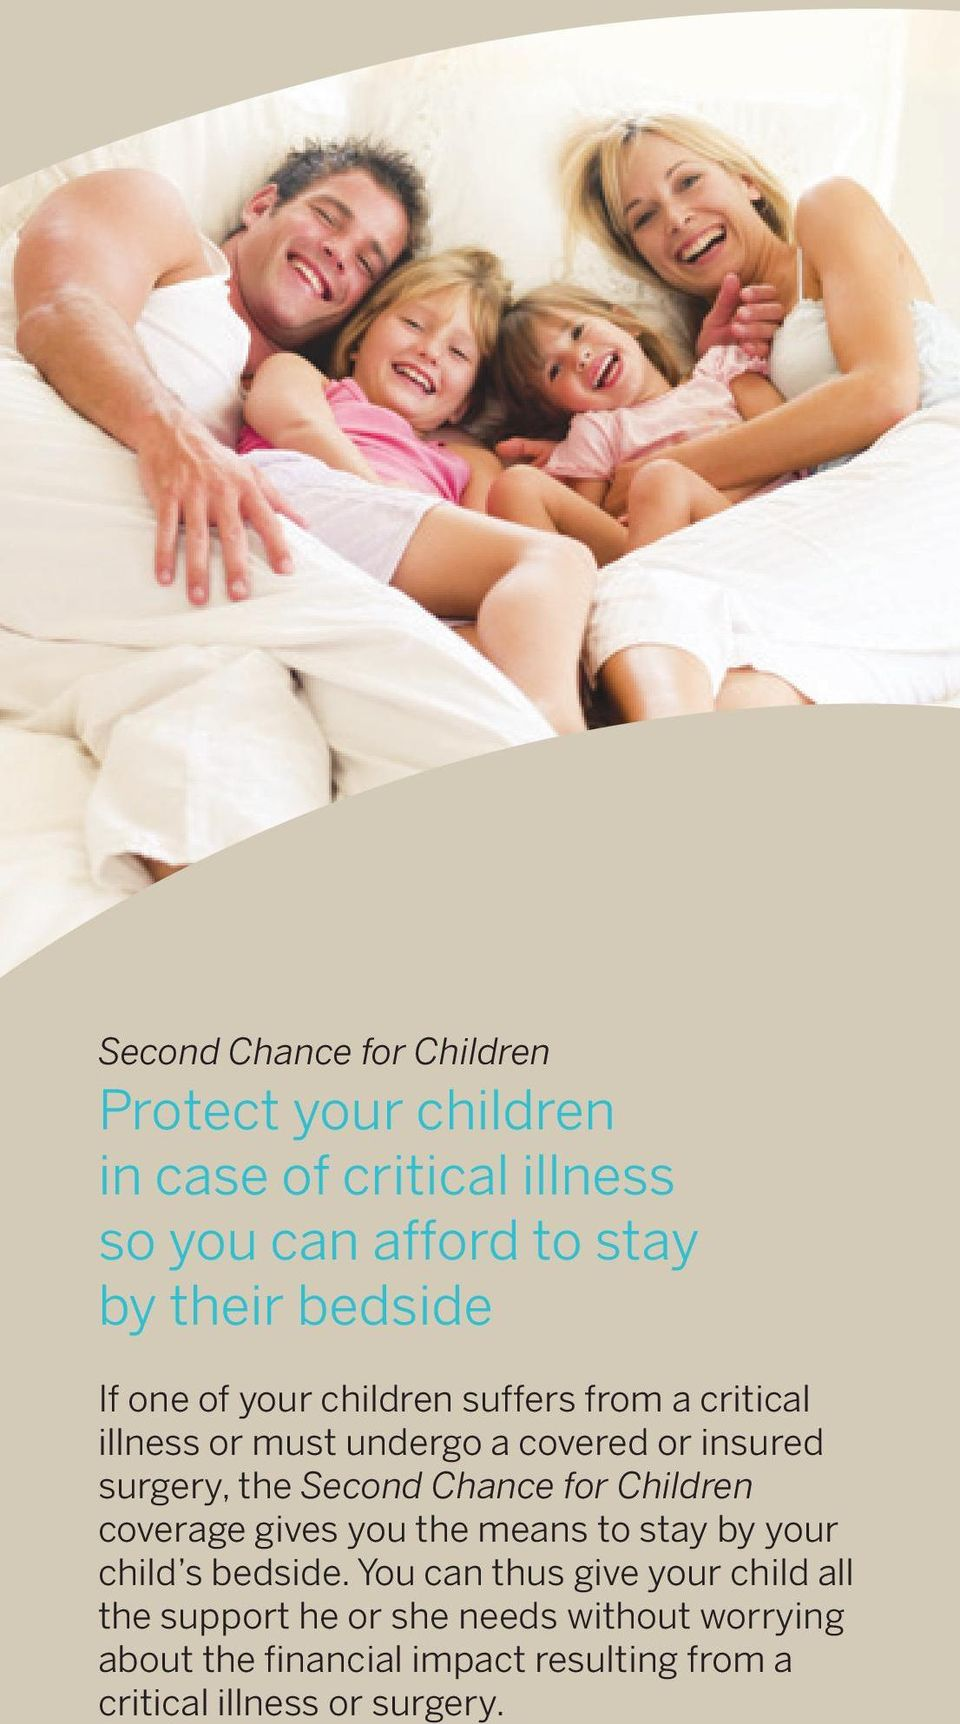 Second Chance for Children coverage gives you the means to stay by your child s bedside.